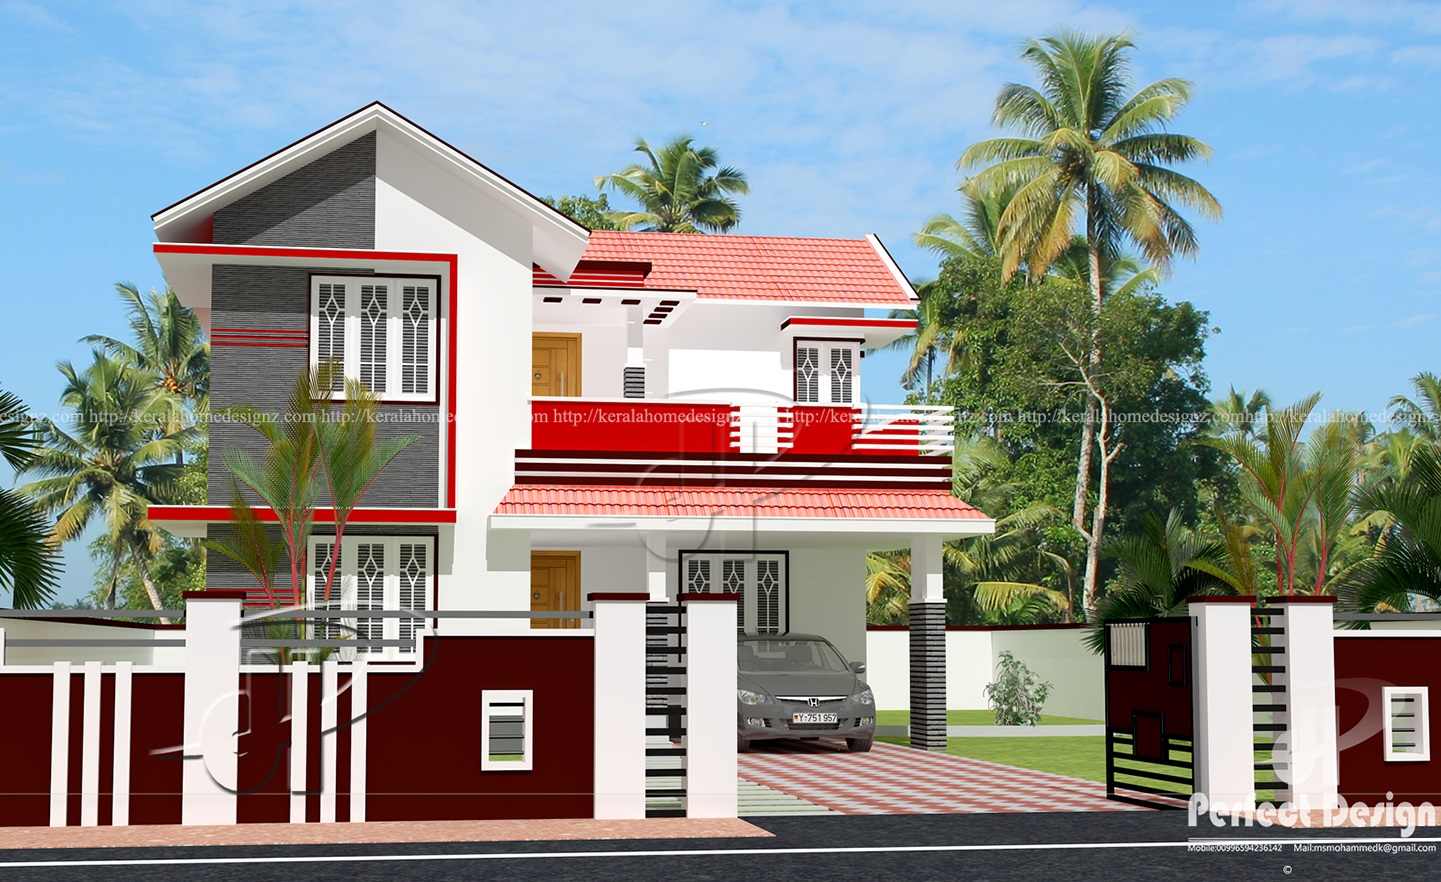 100 25 Square Meters To Feet April 2016 Kerala Home